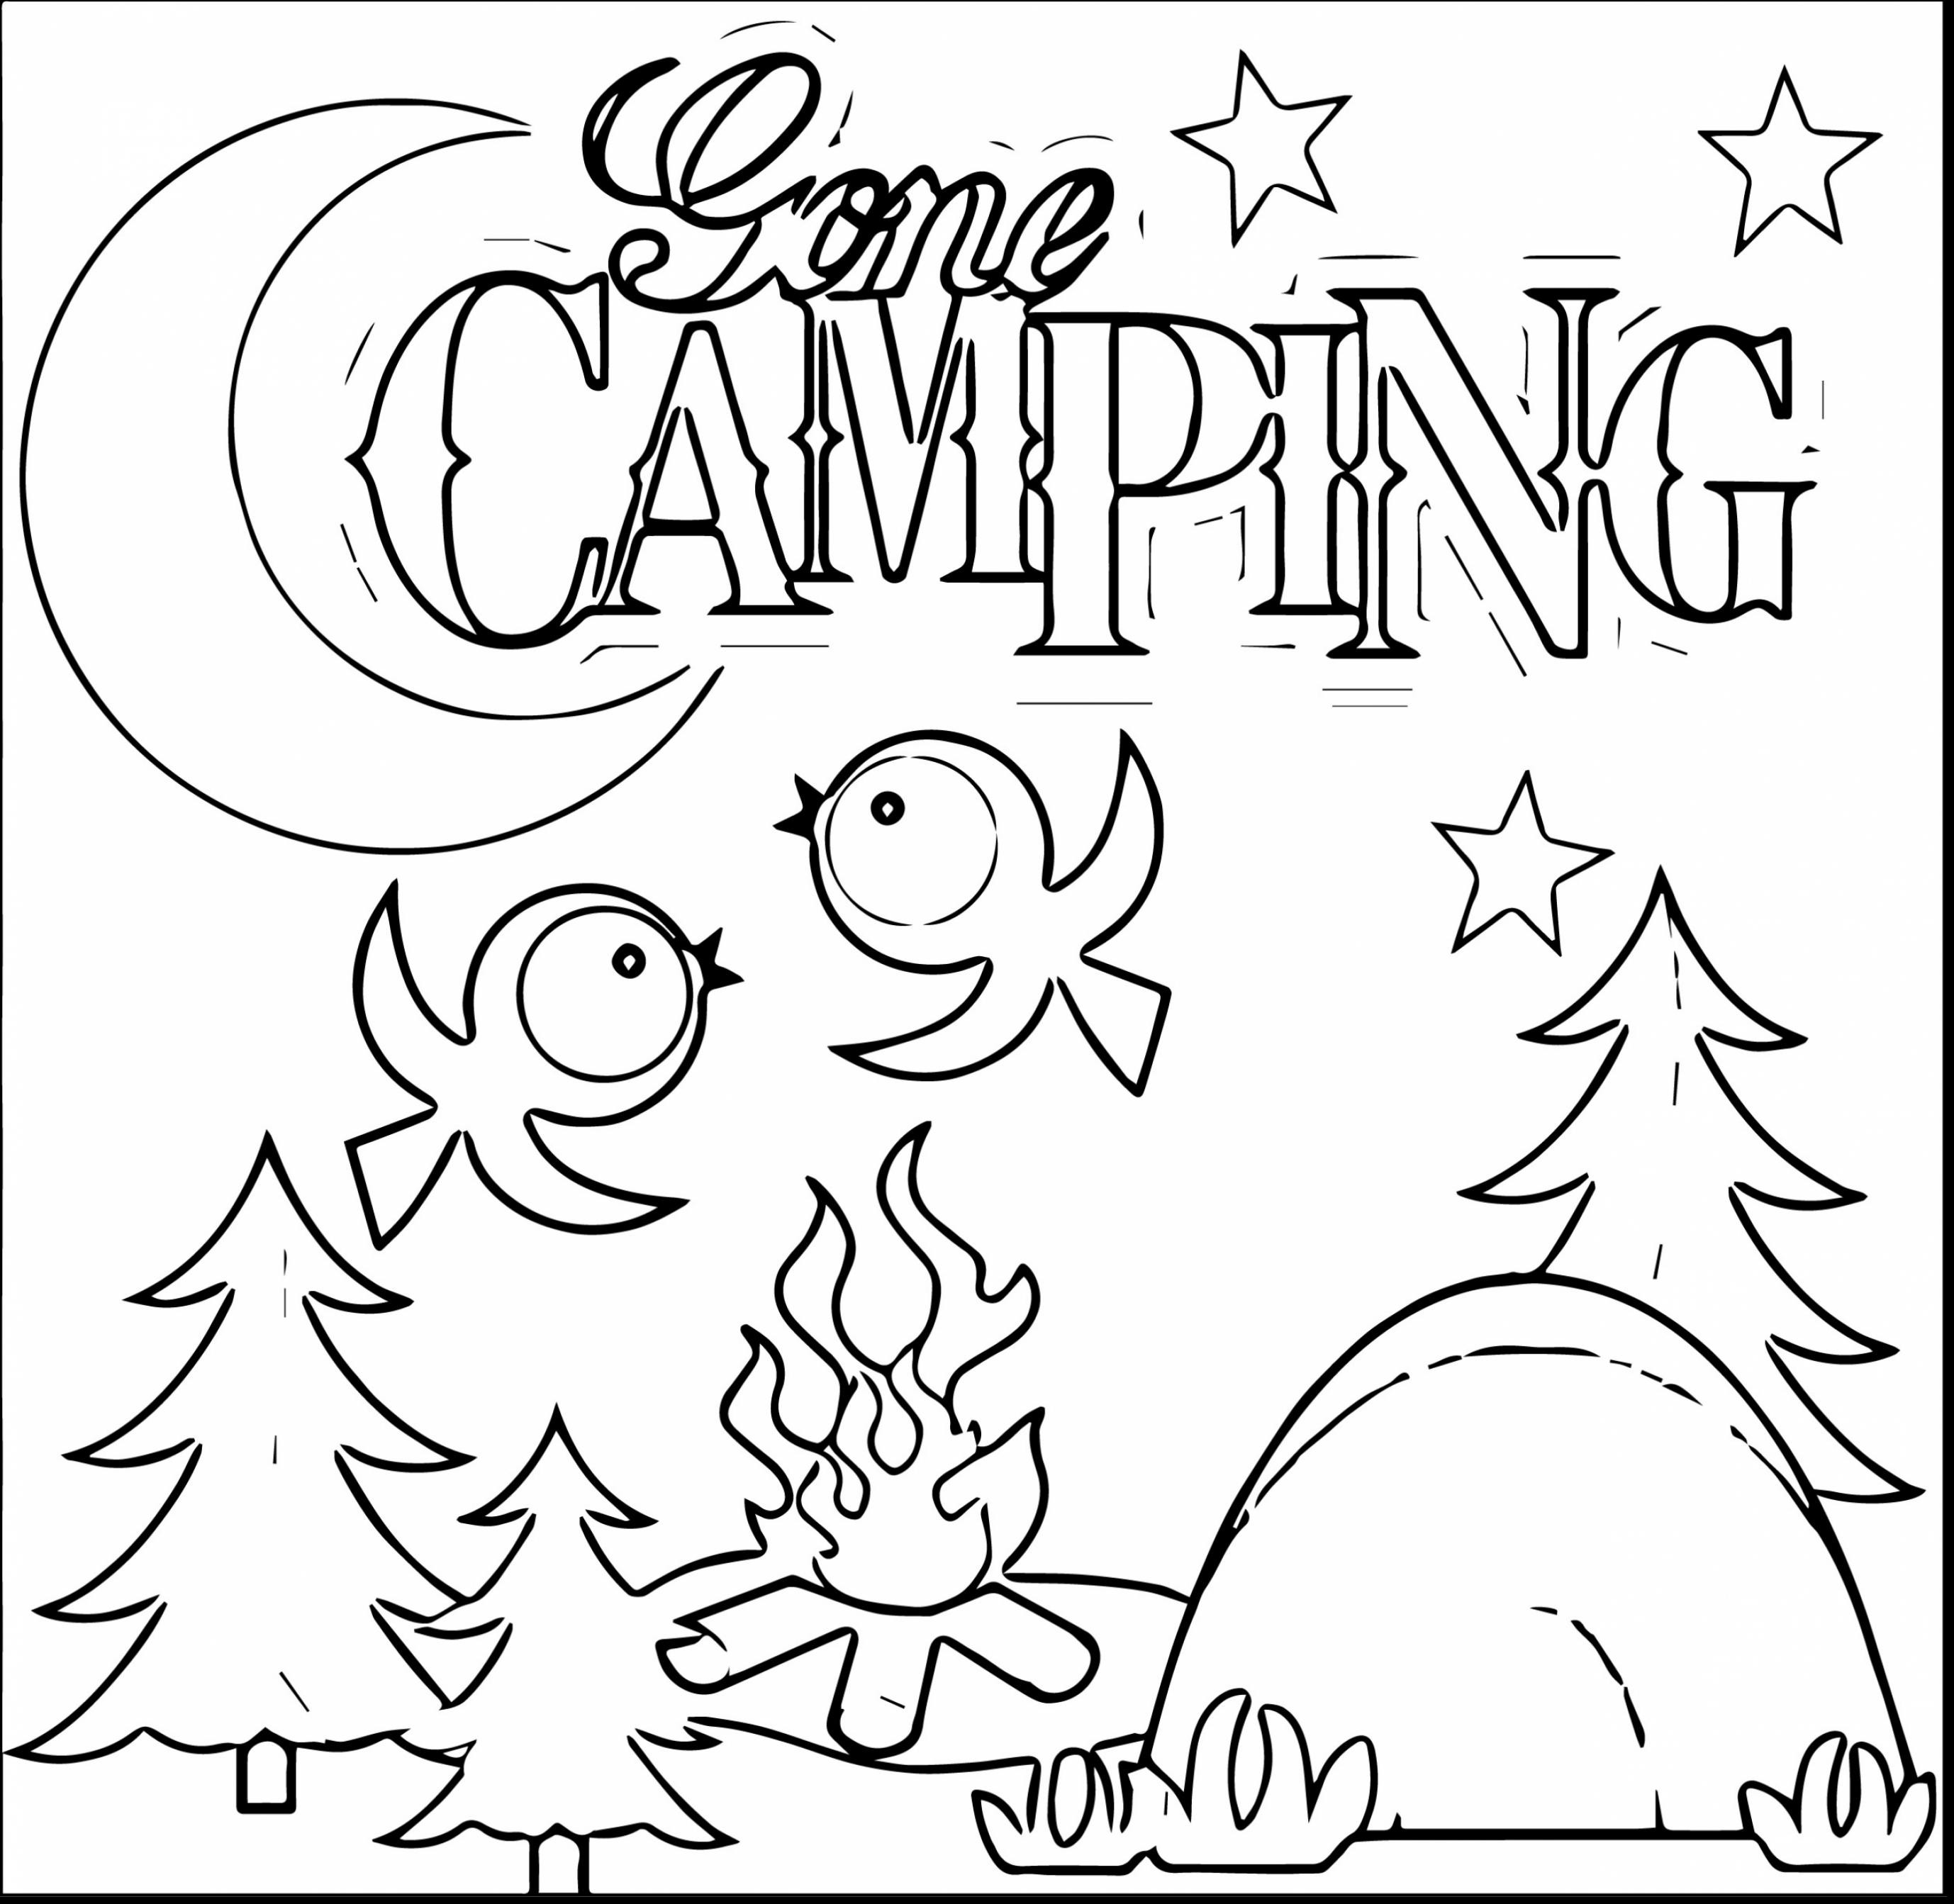 2756x2686 Awesome Camping Coloring Pages Preschool To Good Camping Coloring